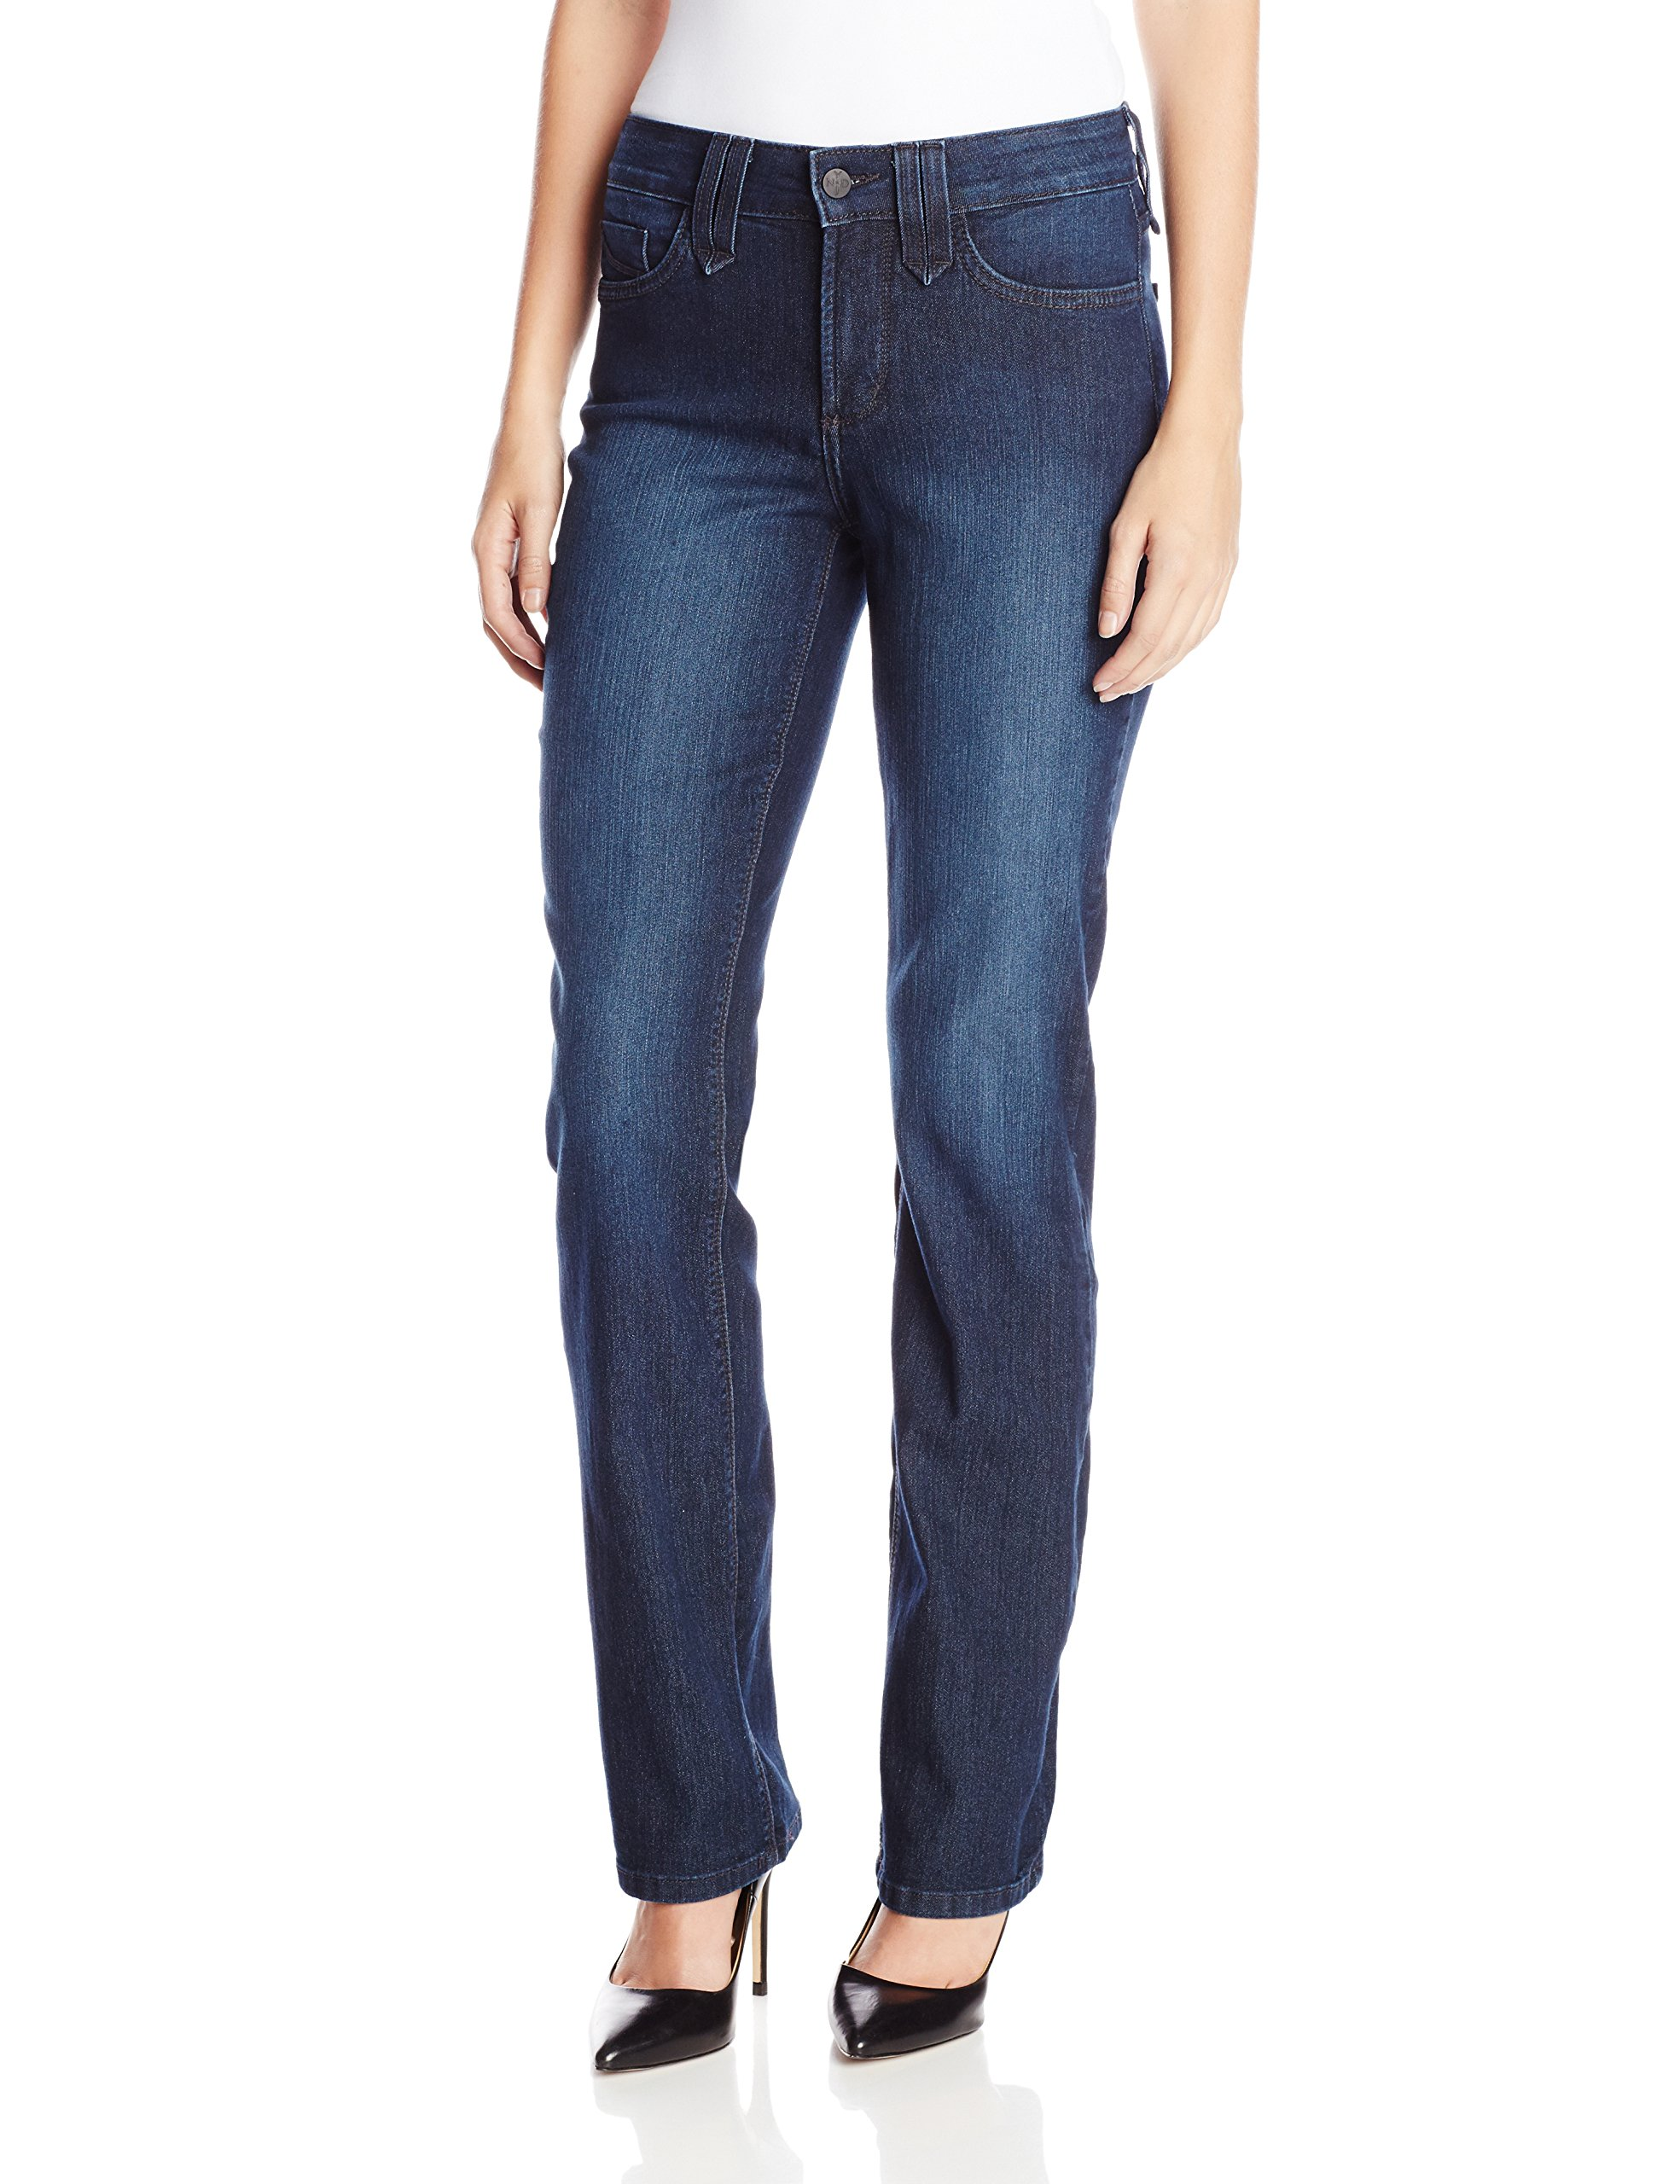 NYDJ Women's Marilyn Straight Leg Jeans, Deep Burbank Wash, 10 by NYDJ